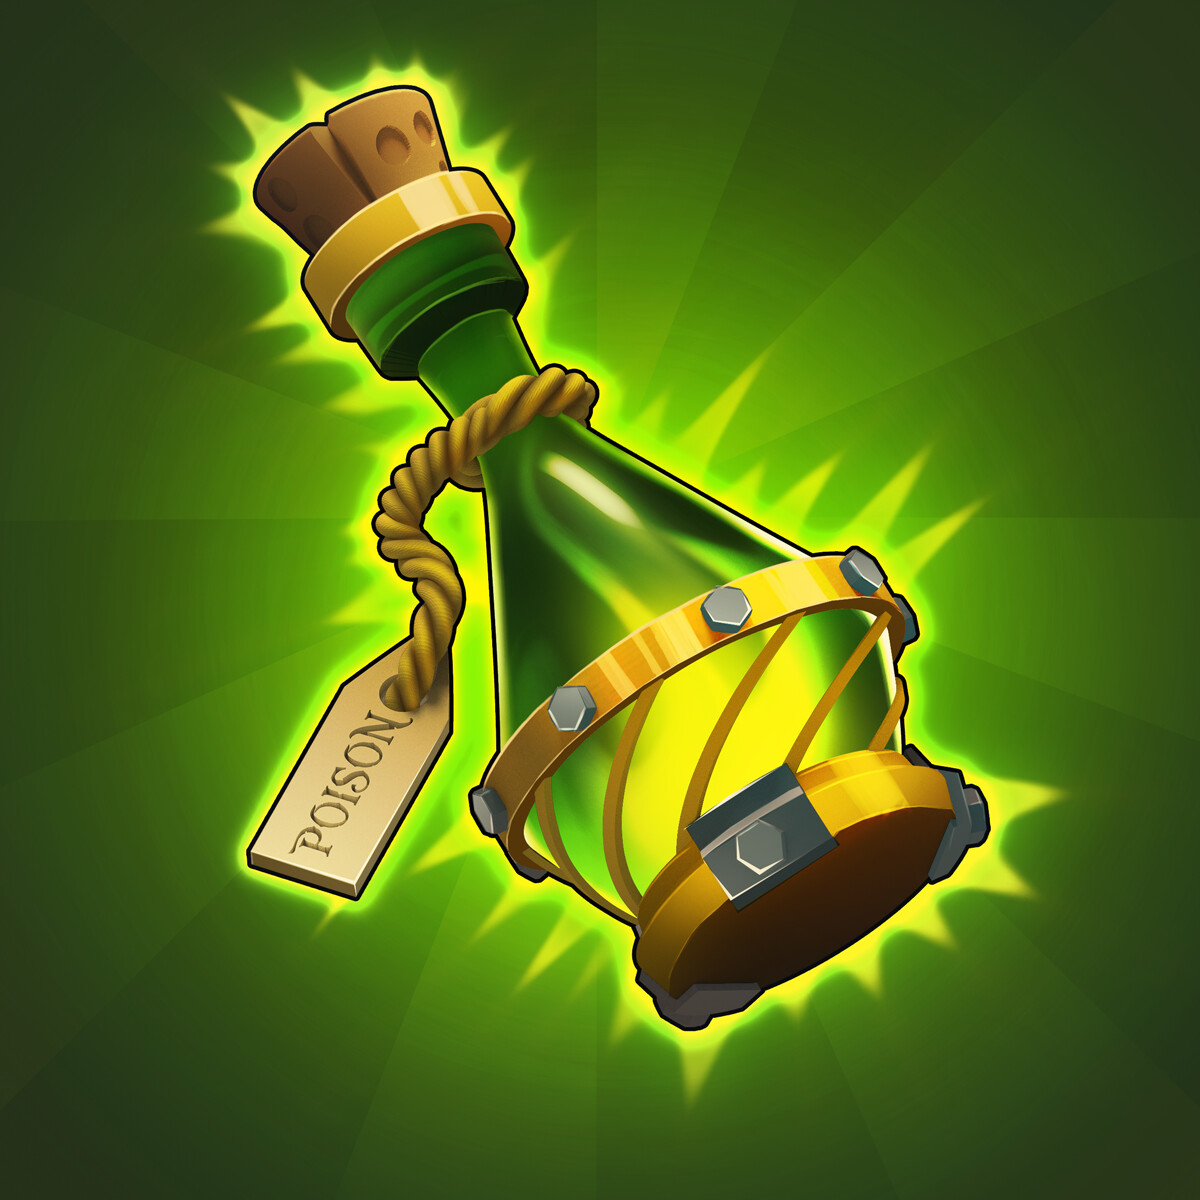 Cem akkaya icon potion